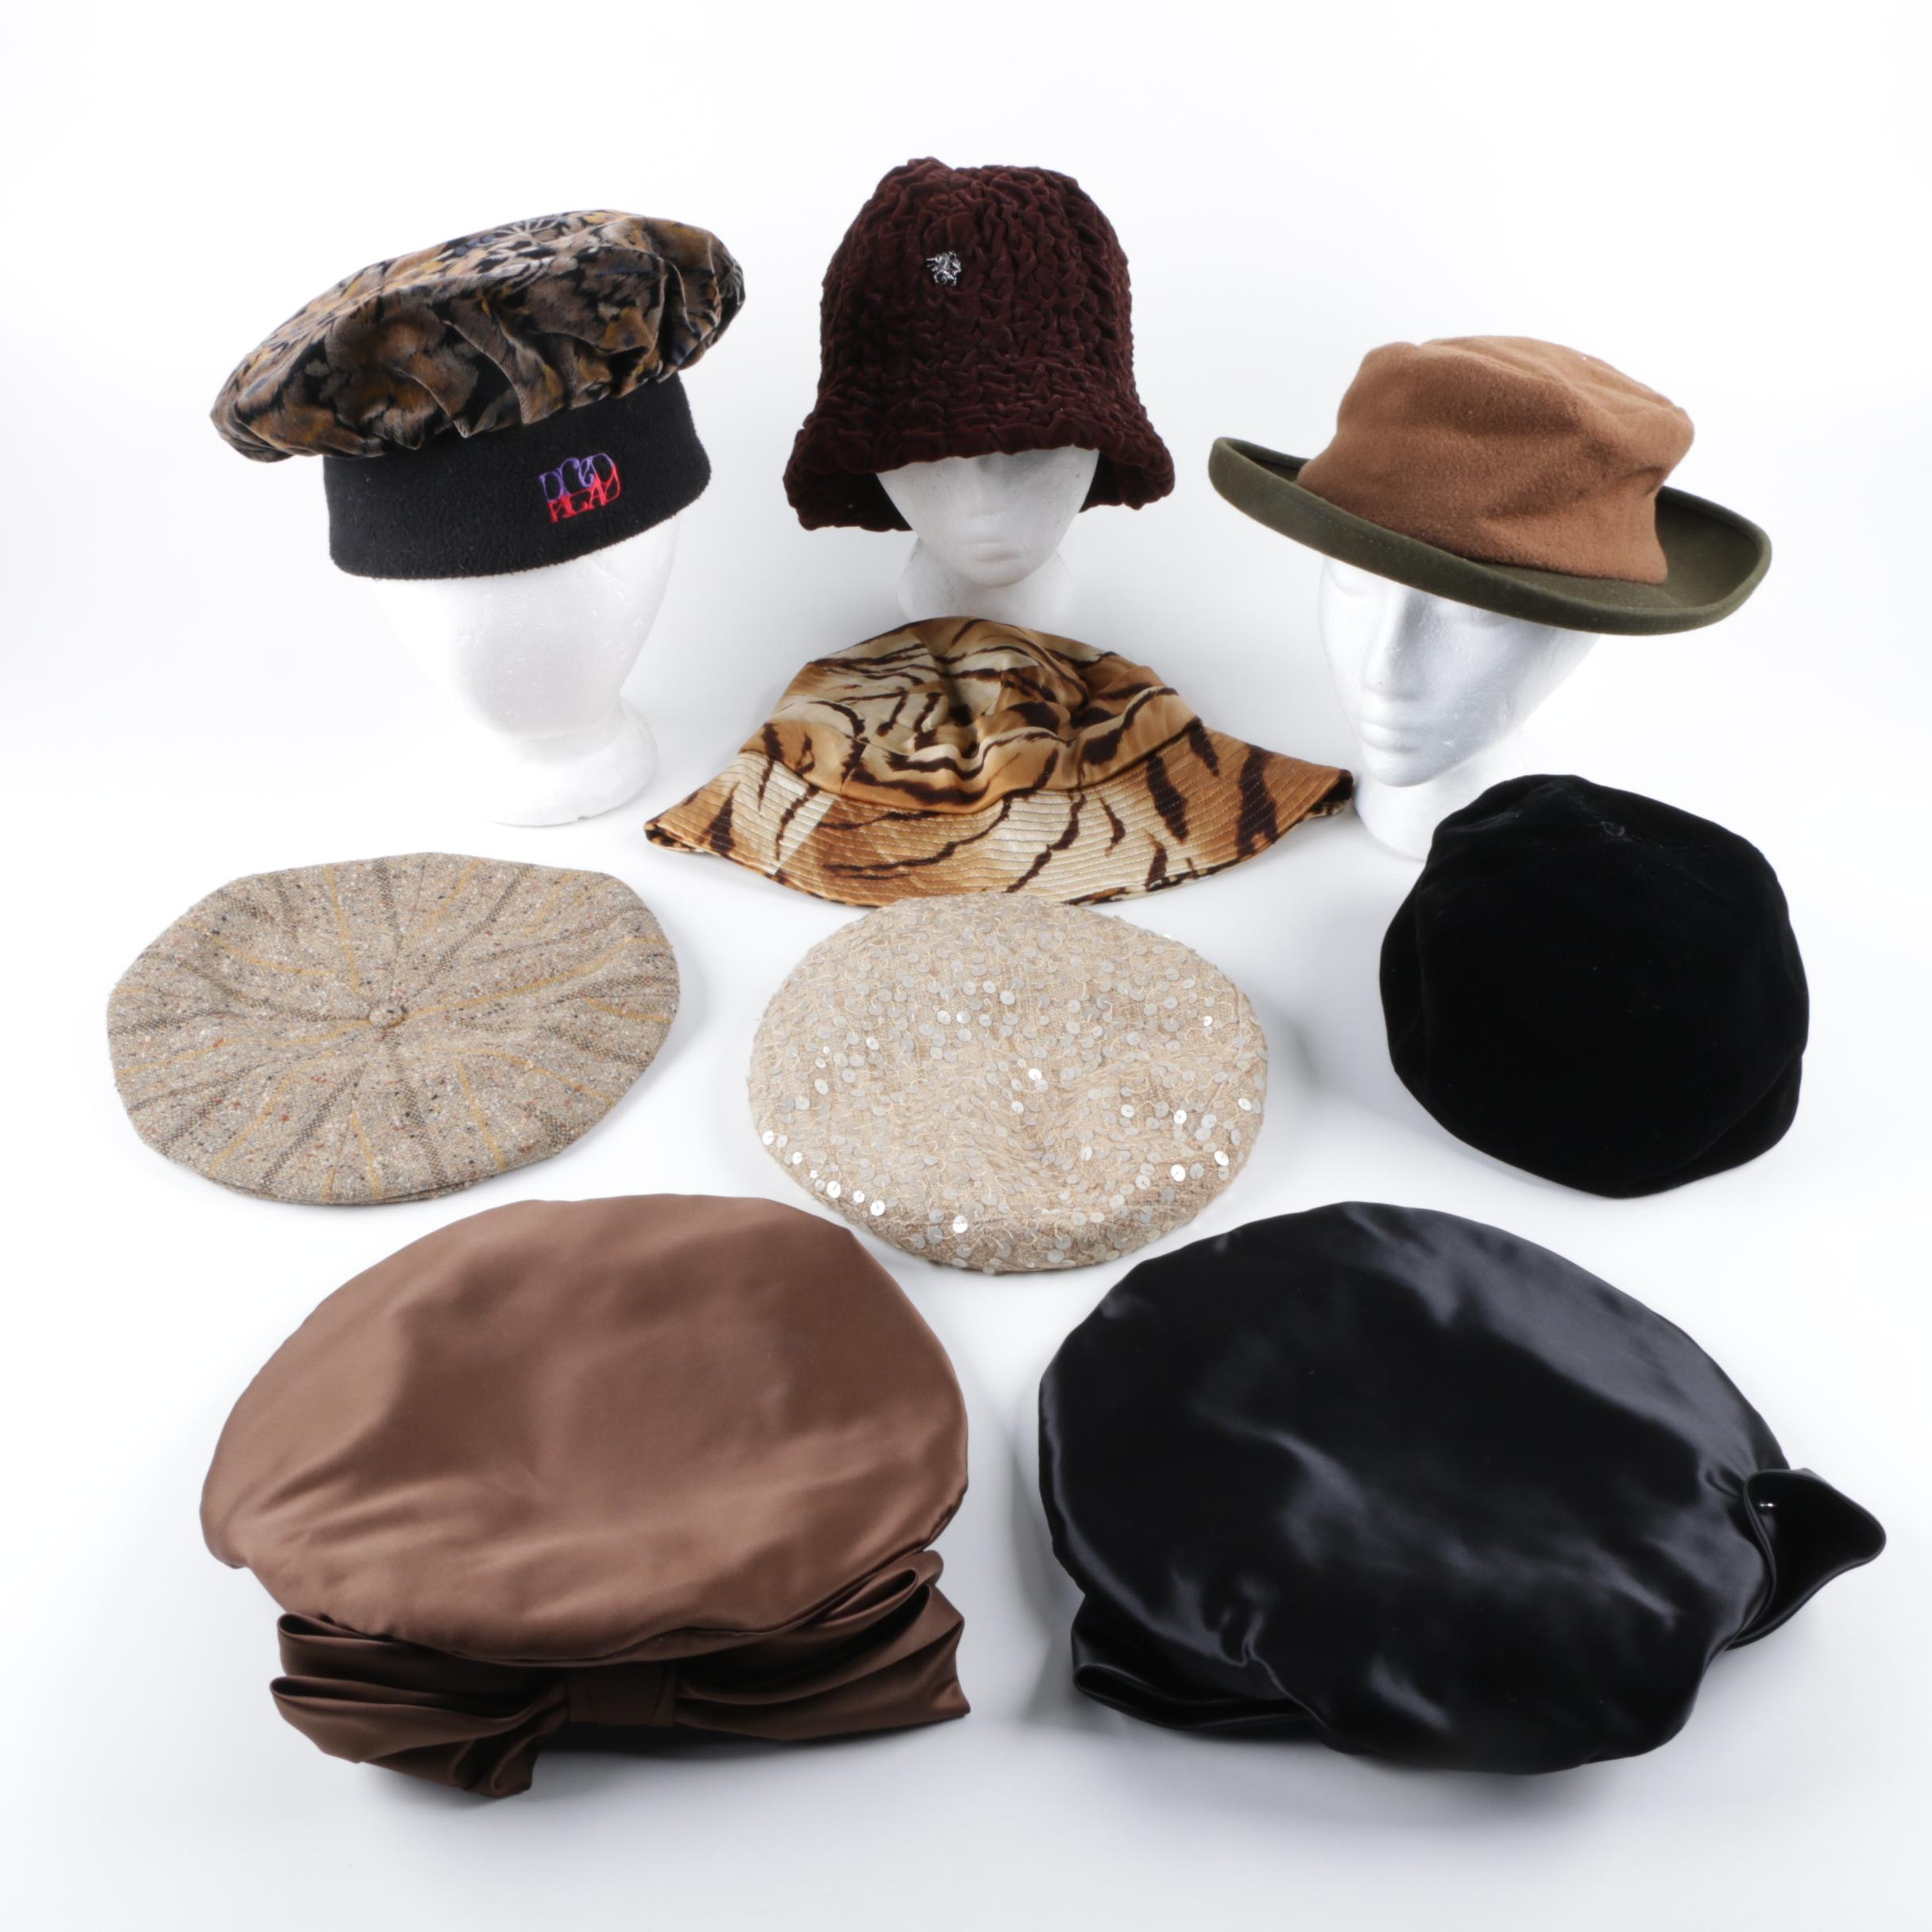 Women's Winter and Fashion Hats Including Phillip Treacy of London and Kokin